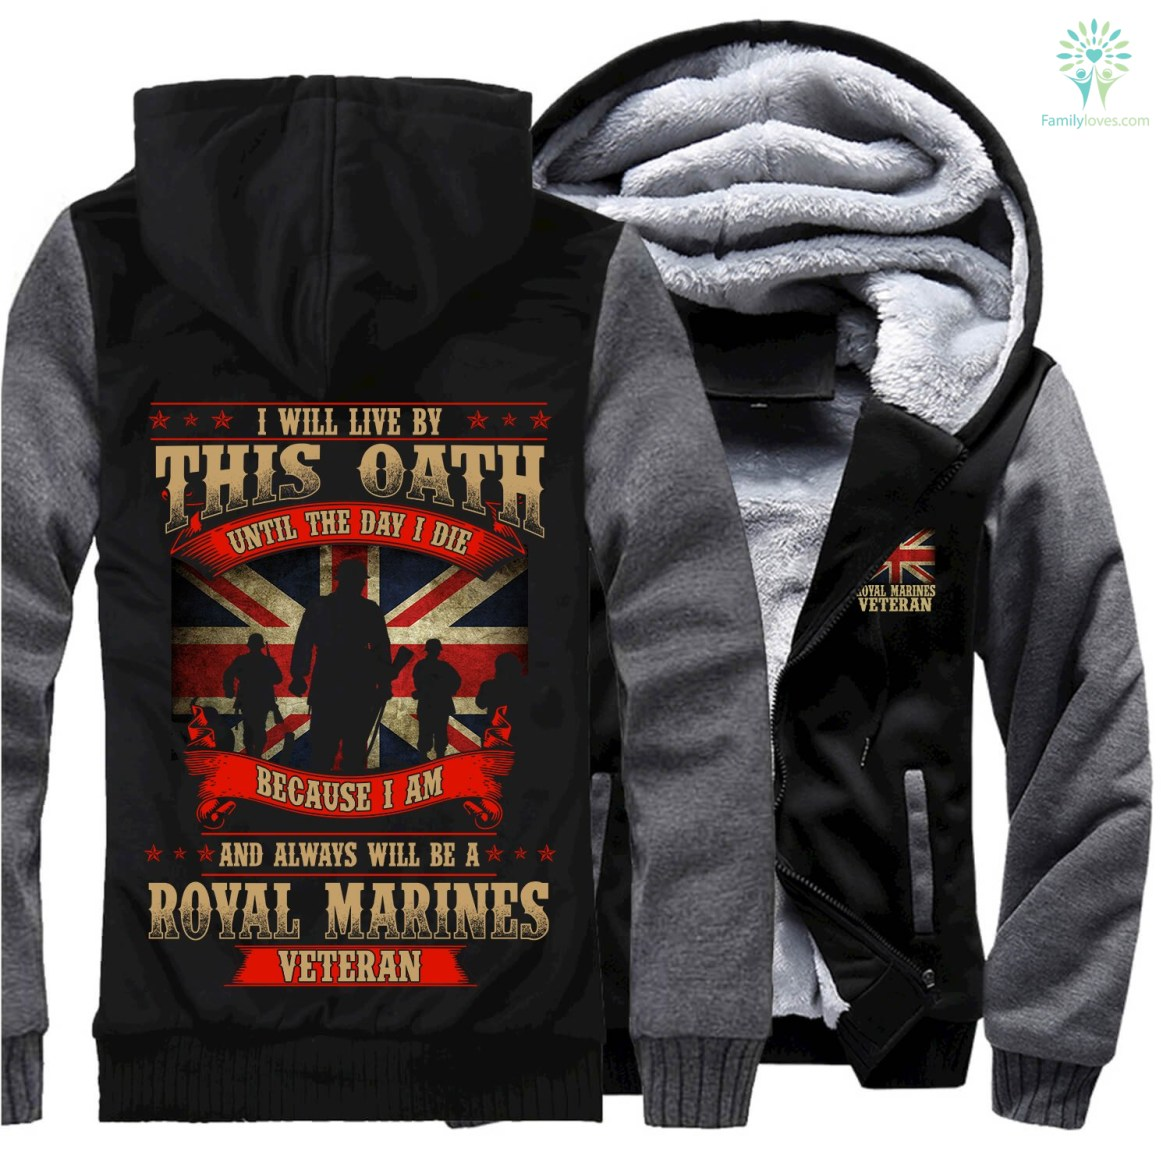 Buy I will live by this oath until the day I die because I am and always will be a Royal Marines veteran hoodie - Familyloves hoodies t-shirt jacket mug cheapest free shipping 50% off